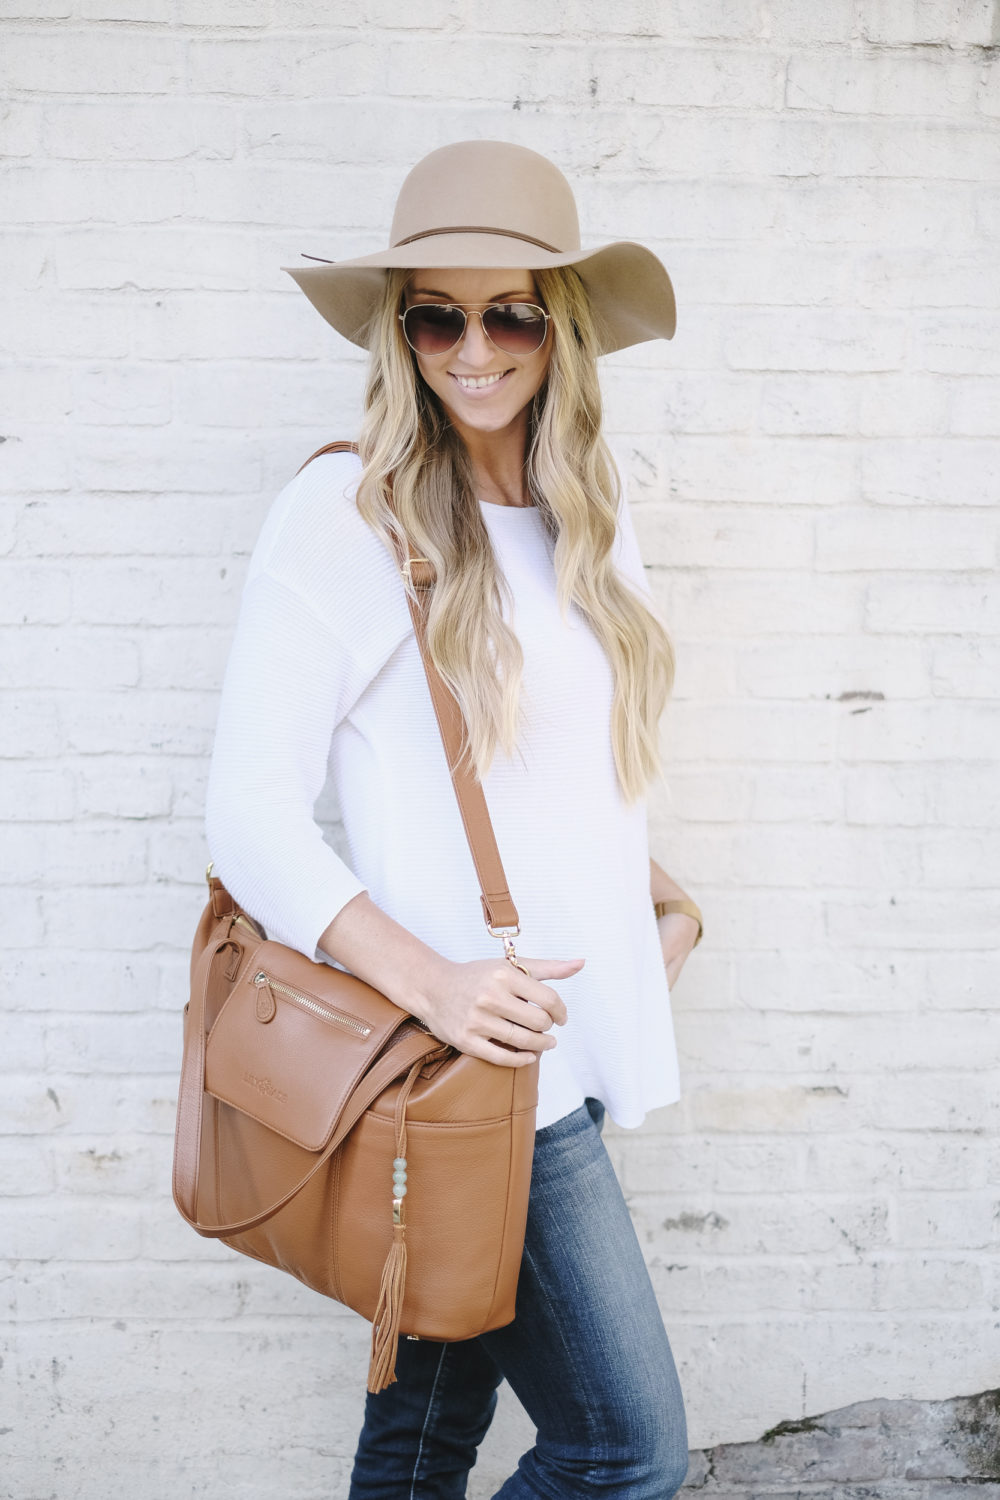 blonde woman carrying leather diaper bag with messenger strap on shoulder